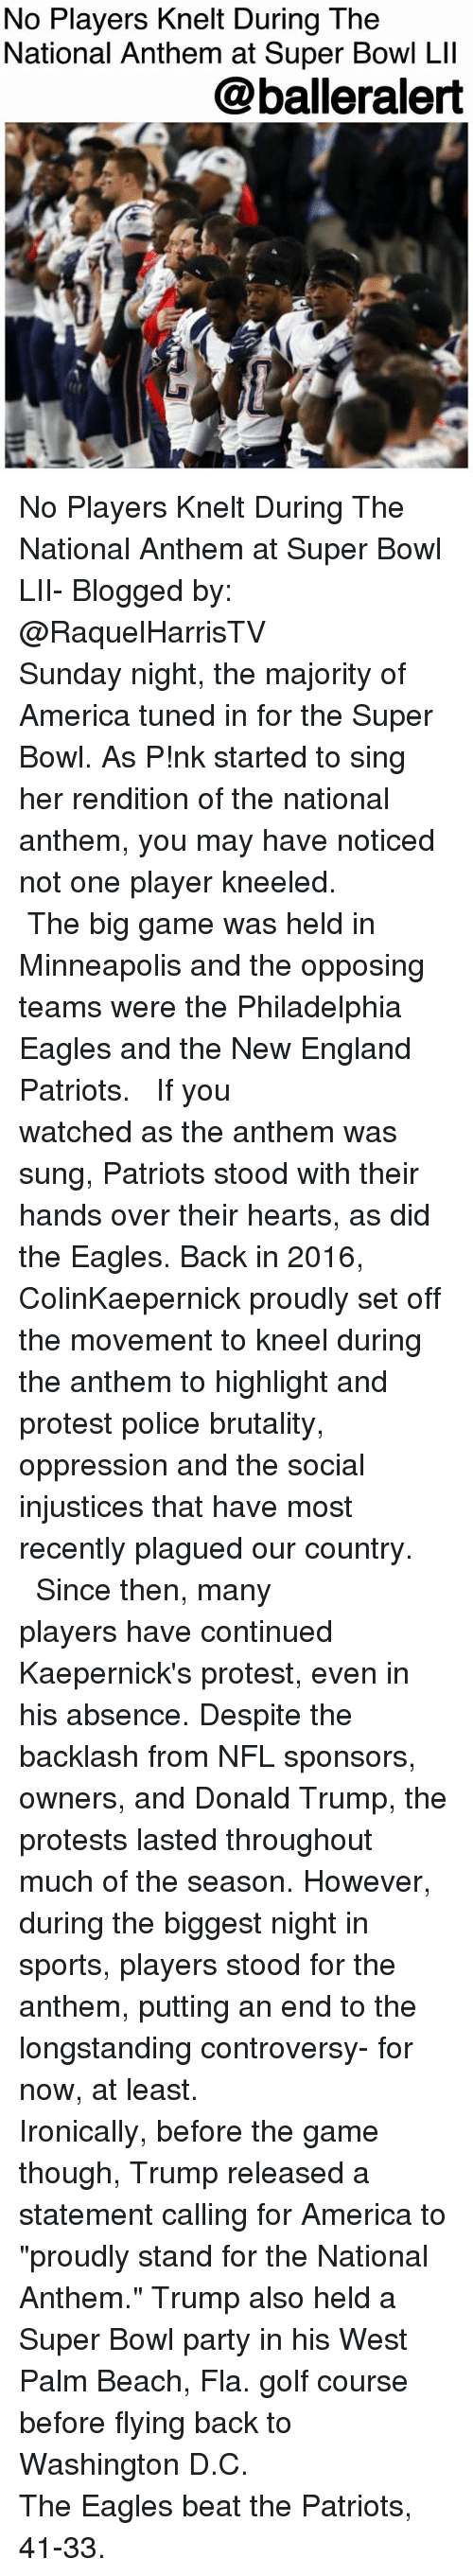 "America, Donald Trump, and Philadelphia Eagles: No Players Knelt During The  National Anthem at Super Bowl Lll  @balleralert No Players Knelt During The National Anthem at Super Bowl LII- Blogged by: @RaquelHarrisTV ⠀⠀⠀⠀⠀⠀⠀ ⠀⠀⠀⠀⠀⠀⠀ Sunday night, the majority of America tuned in for the Super Bowl. As P!nk started to sing her rendition of the national anthem, you may have noticed not one player kneeled. ⠀⠀⠀⠀⠀⠀⠀⠀⠀ ⠀⠀⠀⠀⠀⠀⠀⠀⠀ The big game was held in Minneapolis and the opposing teams were the Philadelphia Eagles and the New England Patriots. ⠀⠀⠀⠀⠀⠀⠀⠀⠀ ⠀⠀⠀⠀⠀⠀⠀⠀⠀ If you watched as the anthem was sung, Patriots stood with their hands over their hearts, as did the Eagles. Back in 2016, ColinKaepernick proudly set off the movement to kneel during the anthem to highlight and protest police brutality, oppression and the social injustices that have most recently plagued our country. ⠀⠀⠀⠀⠀⠀⠀⠀⠀ ⠀⠀⠀⠀⠀⠀⠀⠀⠀ Since then, many players have continued Kaepernick's protest, even in his absence. Despite the backlash from NFL sponsors, owners, and Donald Trump, the protests lasted throughout much of the season. However, during the biggest night in sports, players stood for the anthem, putting an end to the longstanding controversy- for now, at least. ⠀⠀⠀⠀⠀⠀⠀ ⠀⠀⠀⠀⠀⠀⠀ Ironically, before the game though, Trump released a statement calling for America to ""proudly stand for the National Anthem."" Trump also held a Super Bowl party in his West Palm Beach, Fla. golf course before flying back to Washington D.C. ⠀⠀⠀⠀⠀⠀⠀⠀⠀ ⠀⠀⠀⠀⠀⠀⠀⠀⠀ The Eagles beat the Patriots, 41-33."